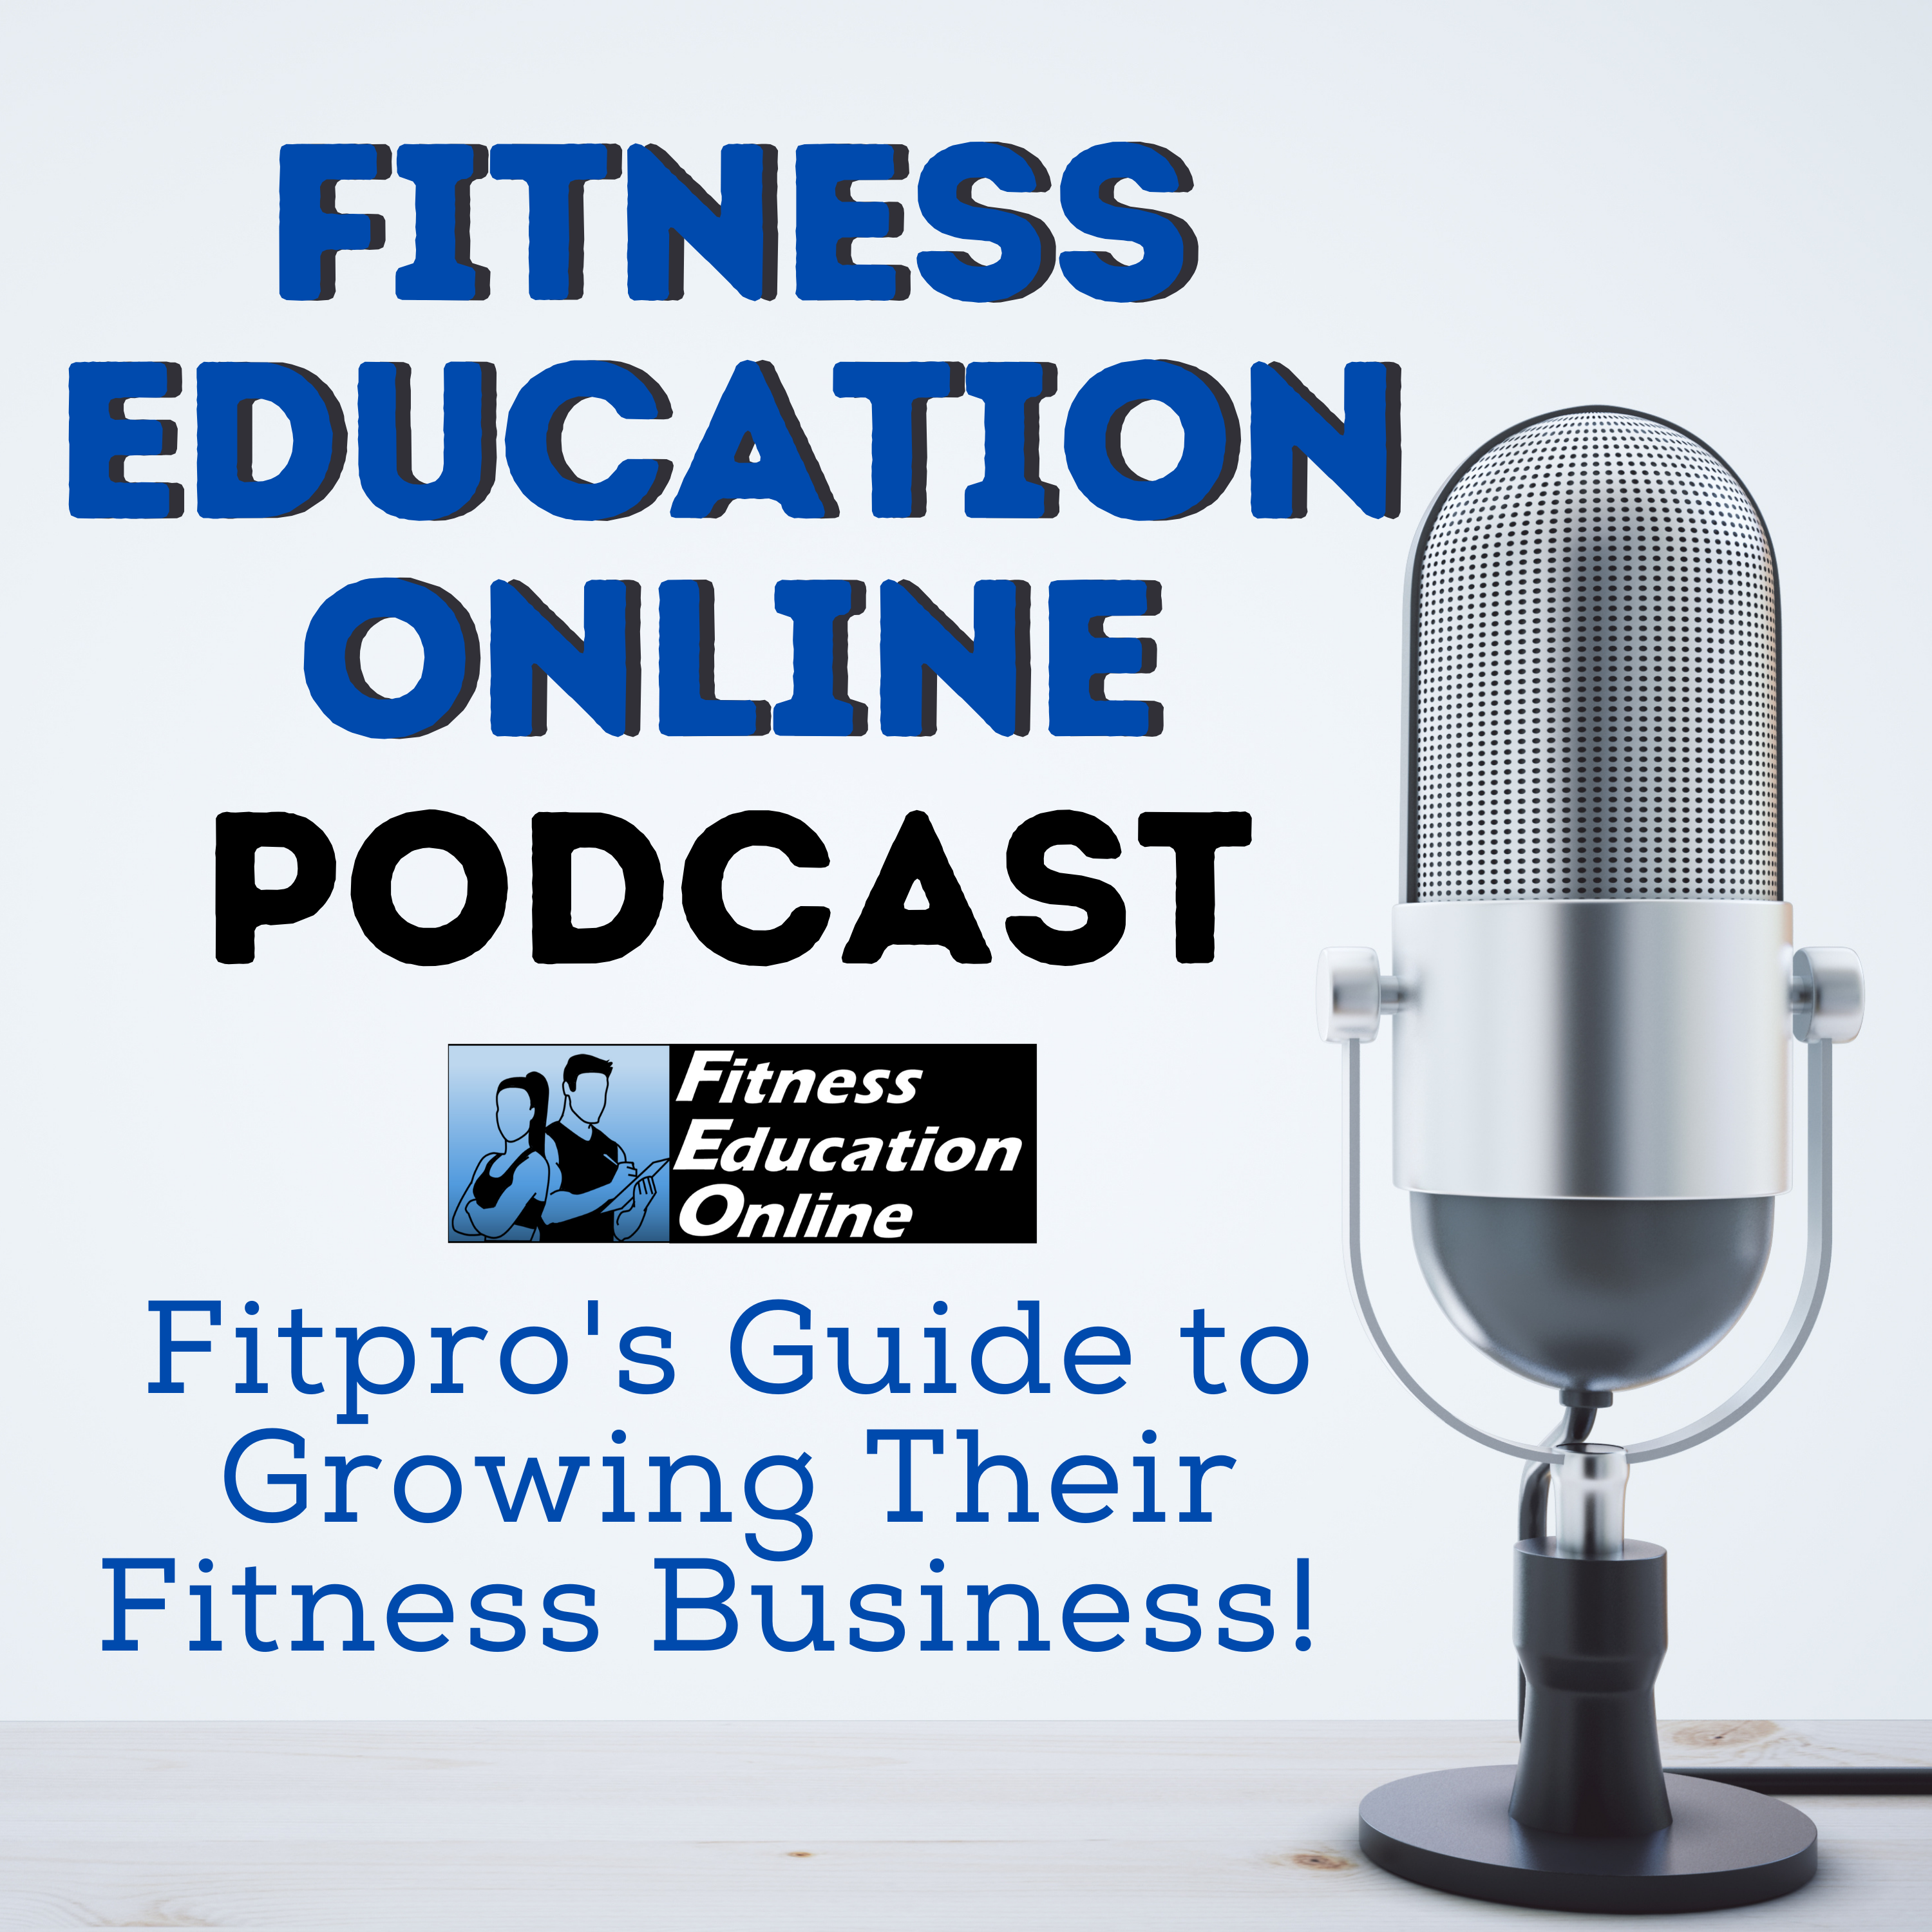 Fitness Education Online Podcast